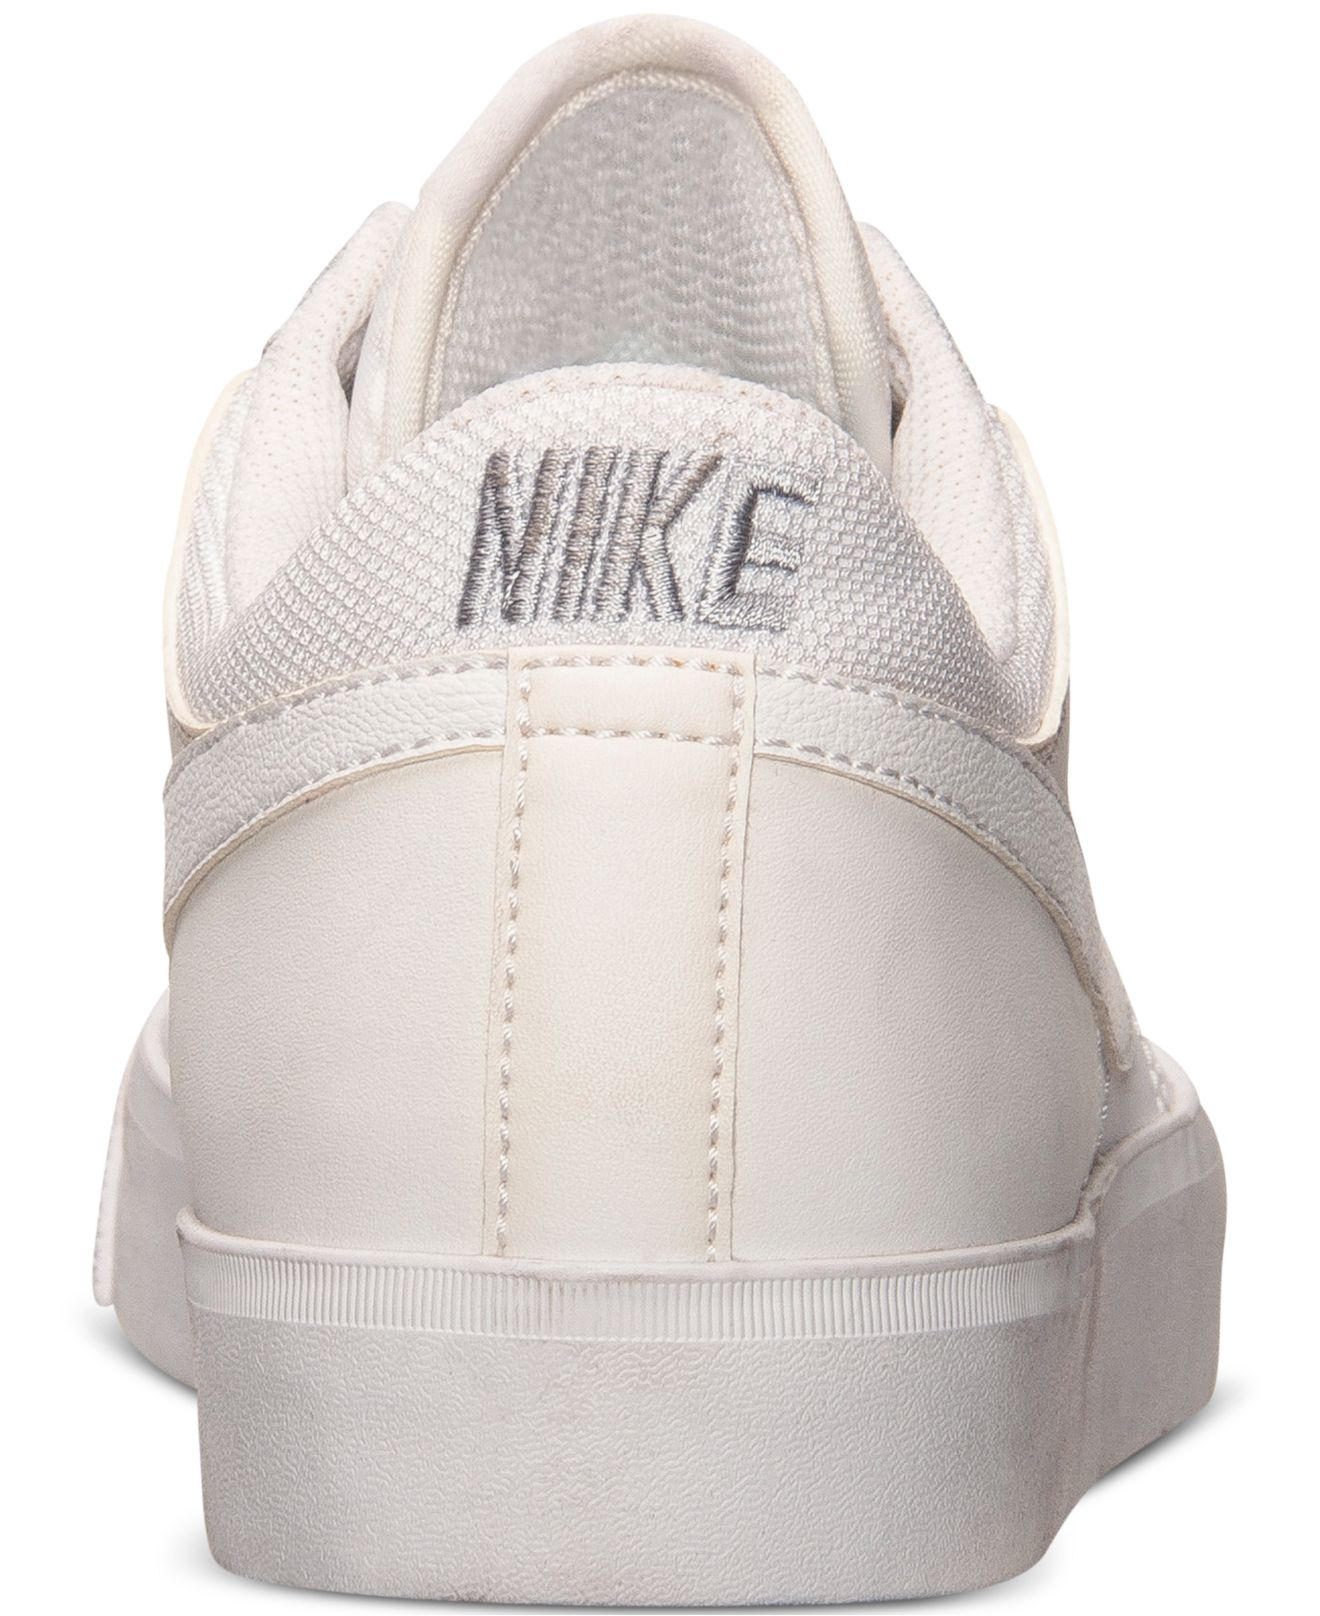 2ea68d5cca40 Lyst - Nike Men s Match Supreme Leather Casual Sneakers From Finish Line in  White for Men